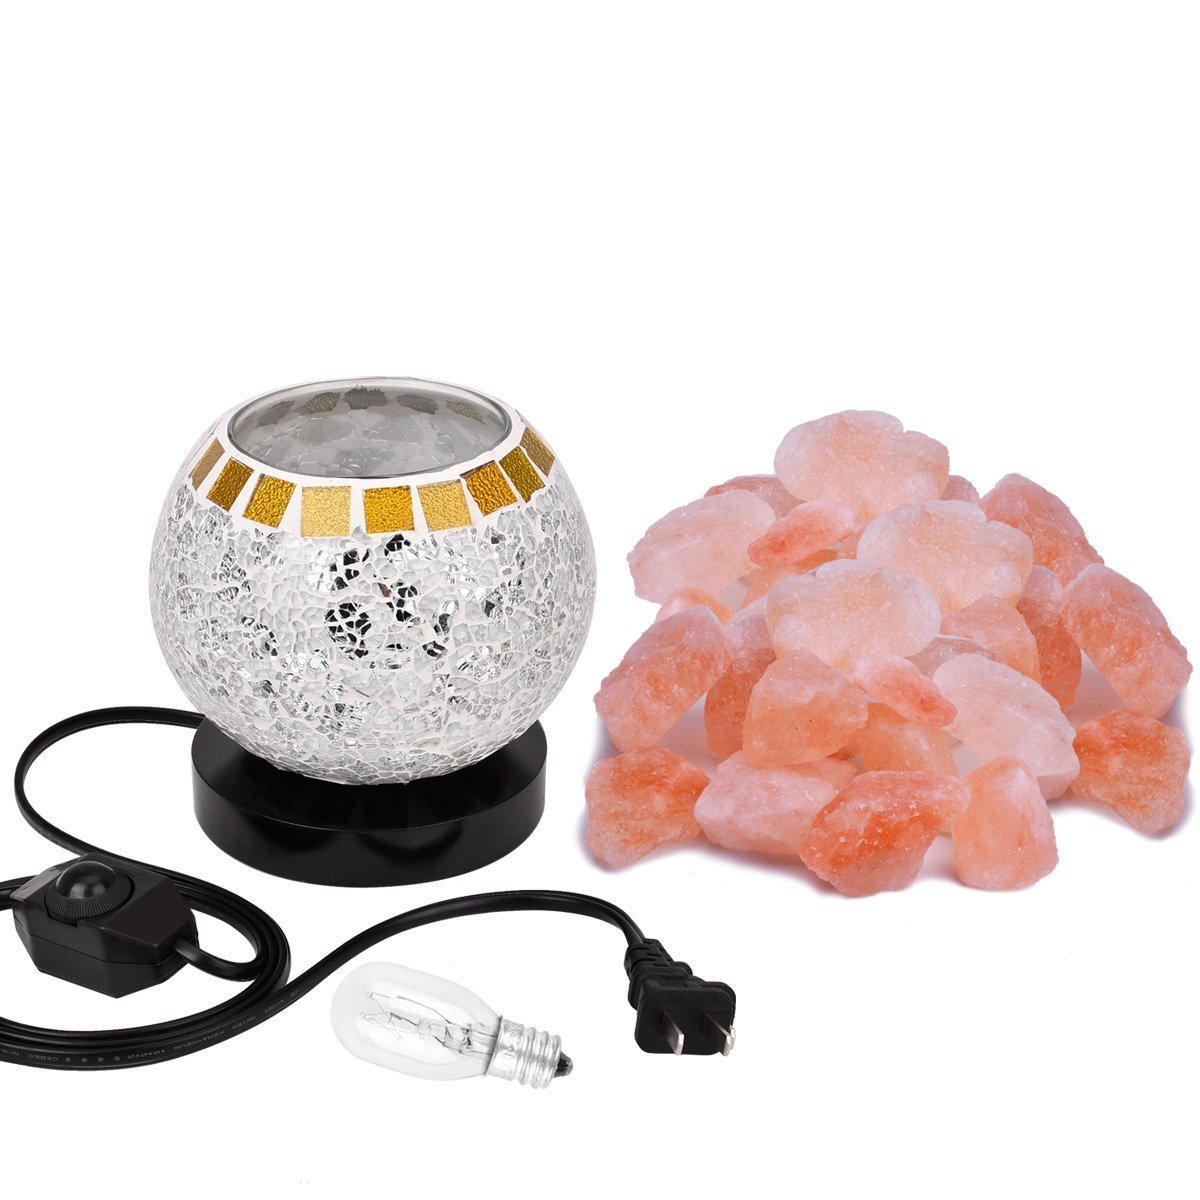 Himalayan Salt Lamp, Natural Crystal Salt Lamp Salt Chunks in Glass Bowl with Wood Base, Bulb and Dimmer Control for Christmas Gift and Home Decorations. [energy class a+++] by COOWOO (Image #8)